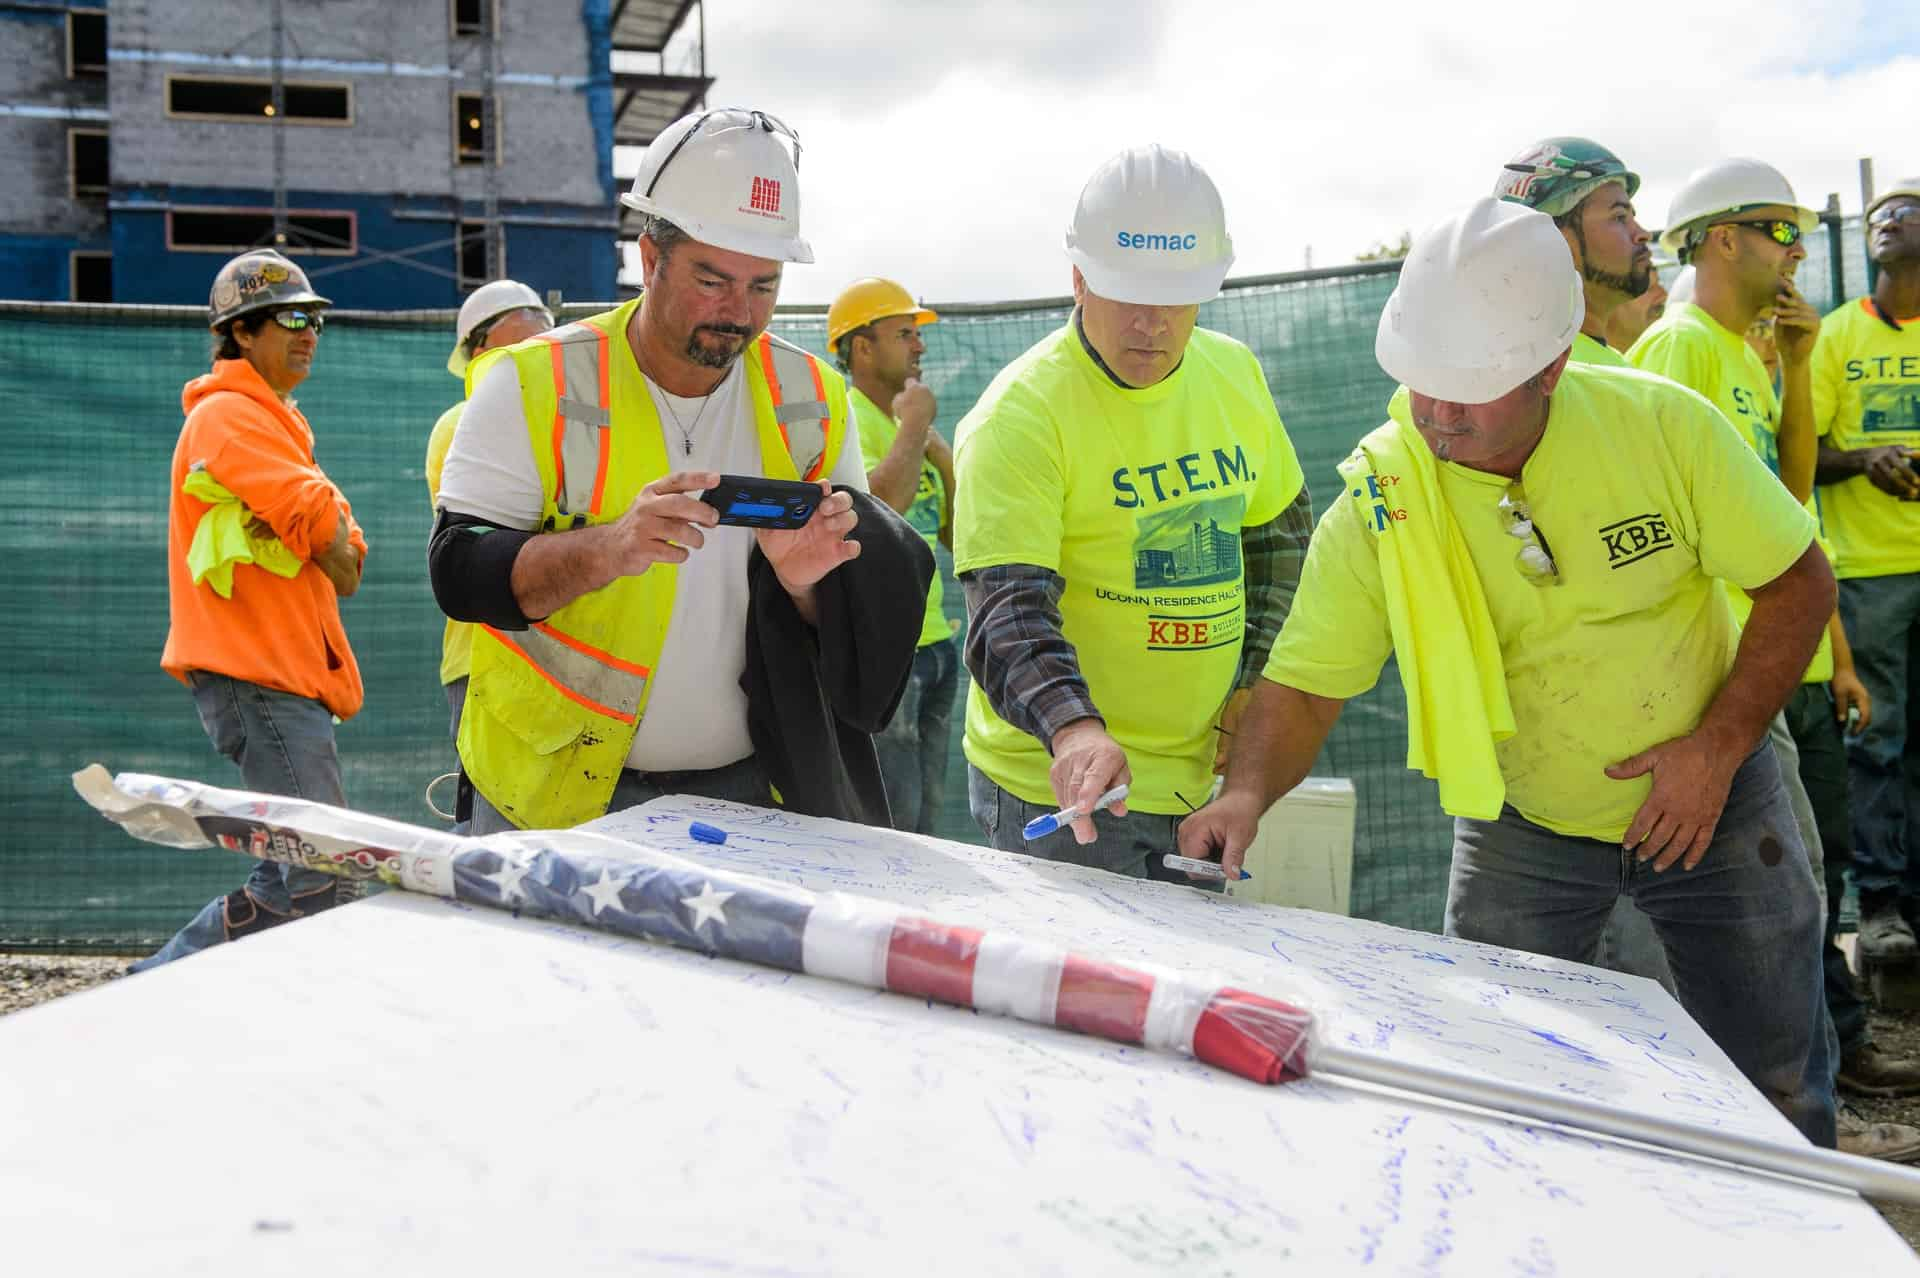 Construction workers sign a concrete panel that will be hoisted to the roof during the topping off ceremony for the STEM residence hall on Sept. 14, 2015. (Peter Morenus/UConn Photo)